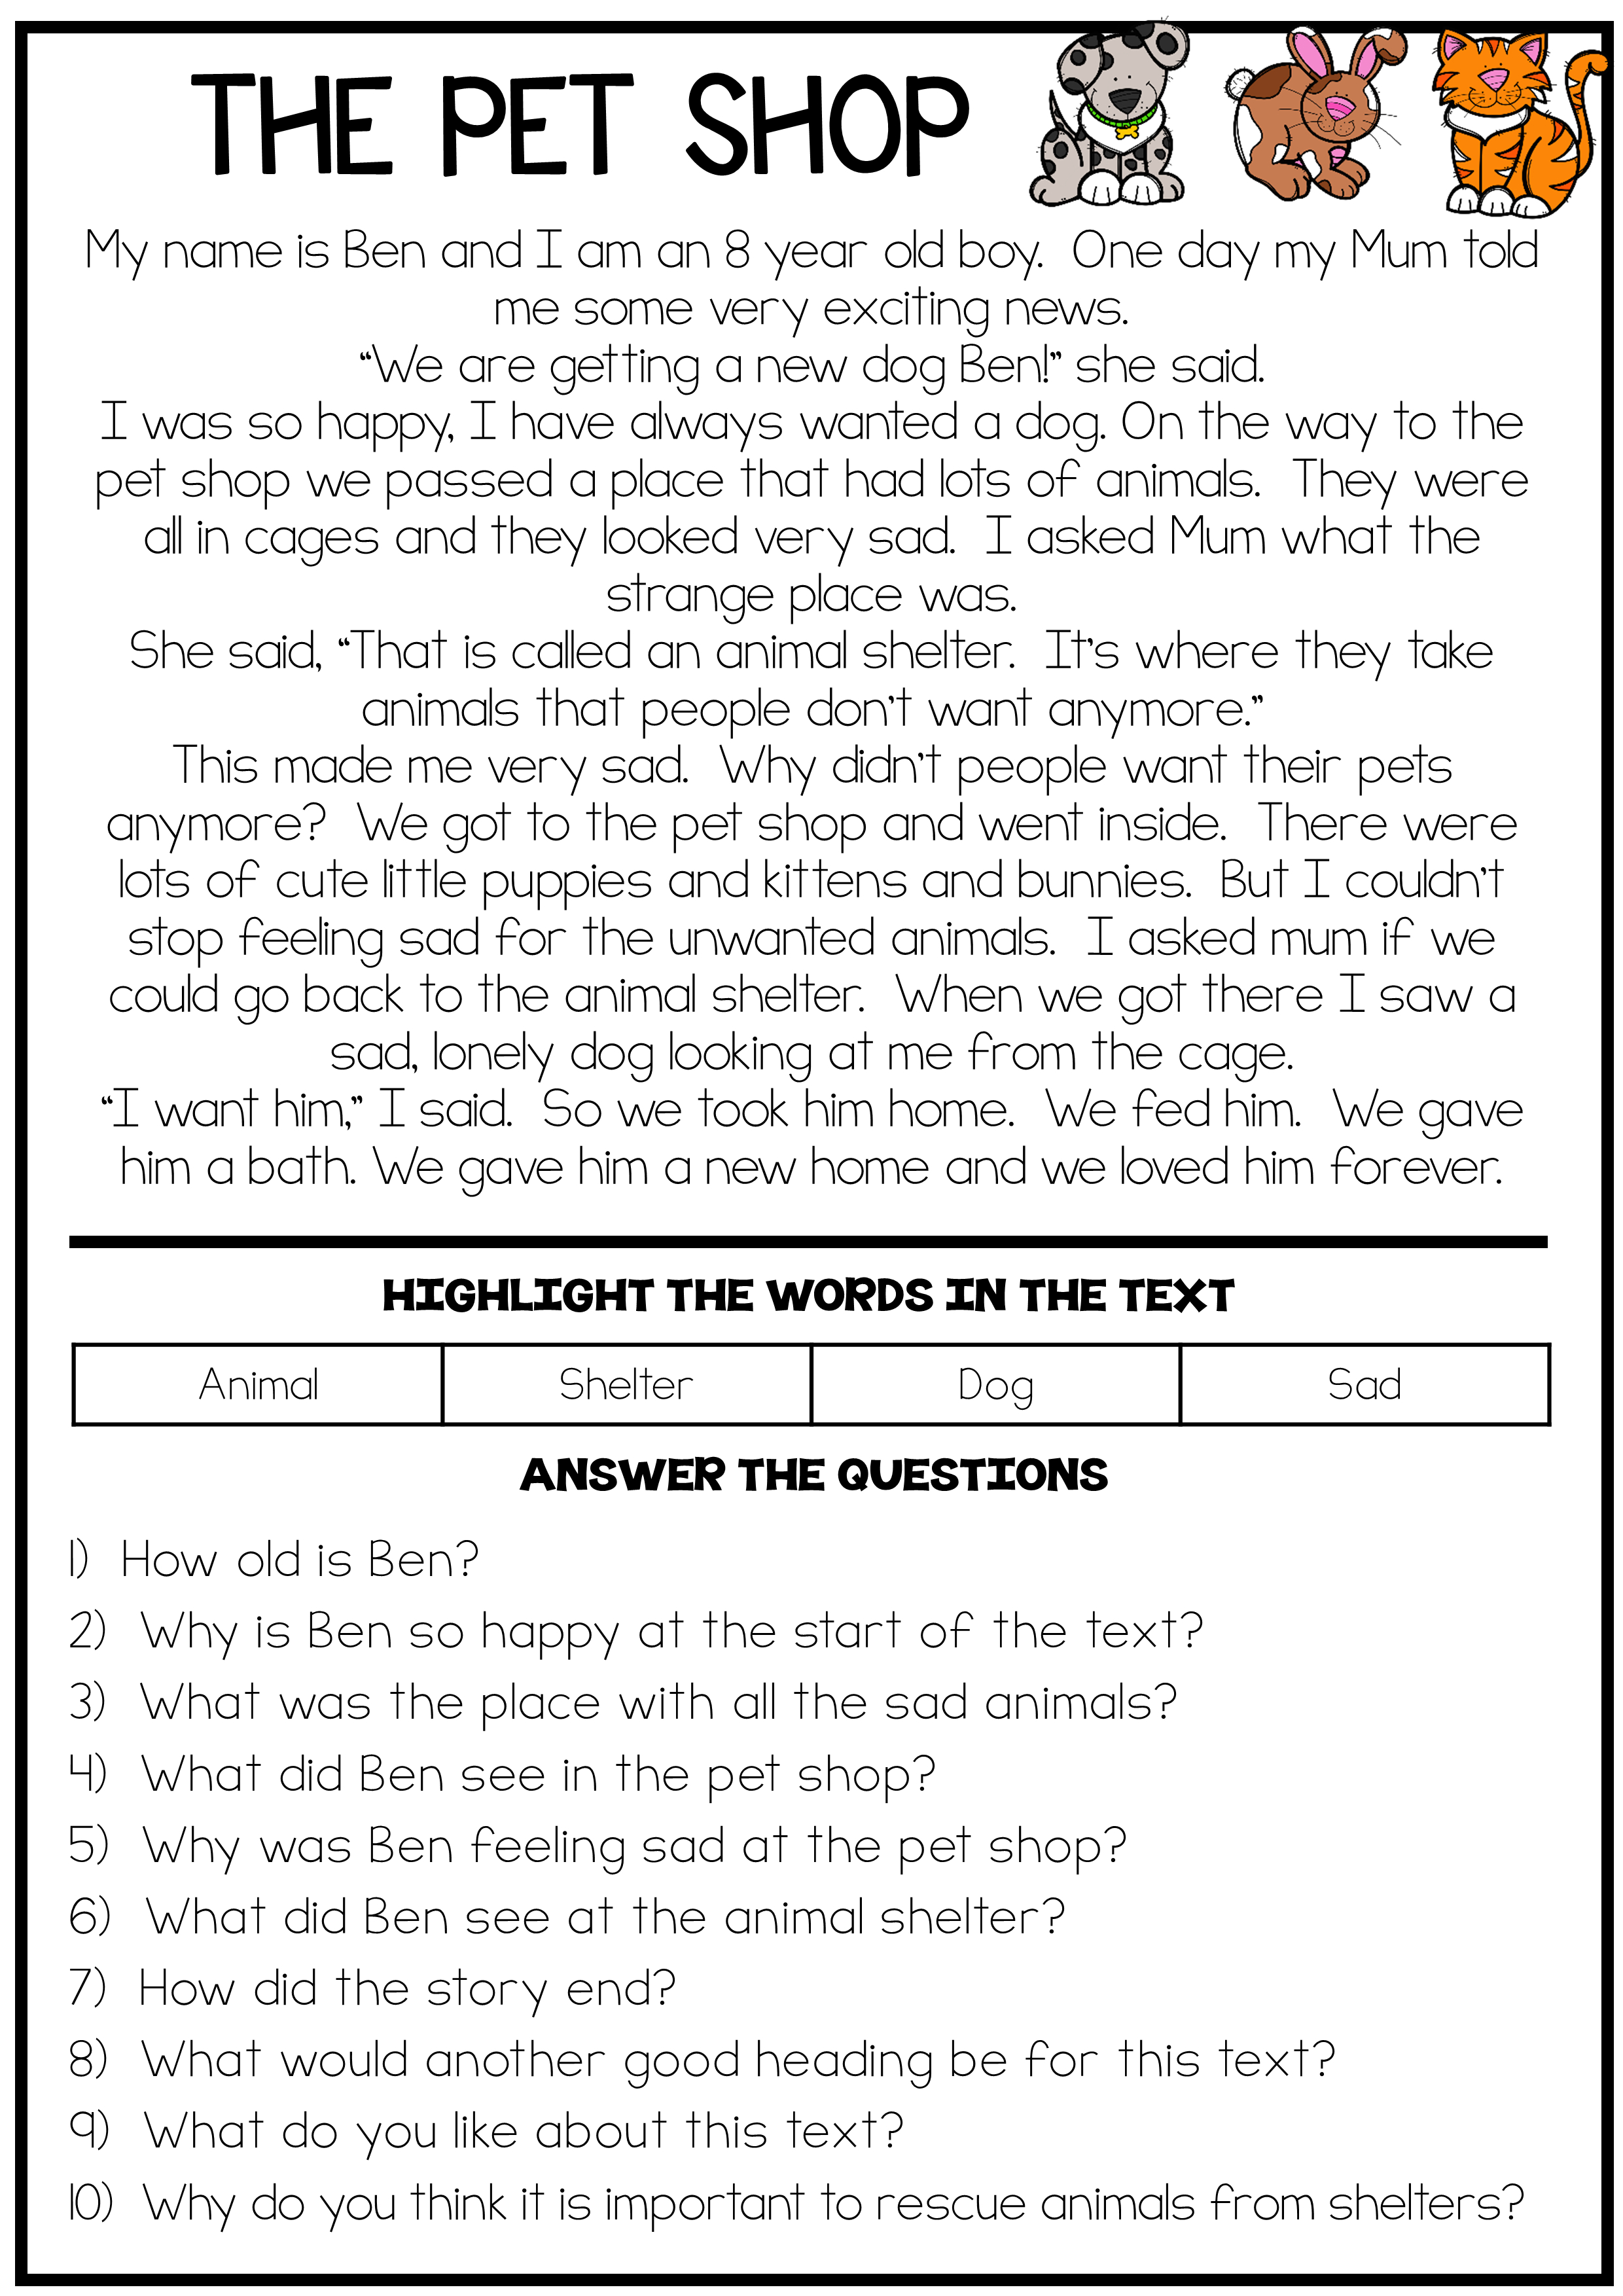 The Pet Shop - Reading Comprehension Passage | Pencils, Chalk, And - Free Printable Read Naturally Passages